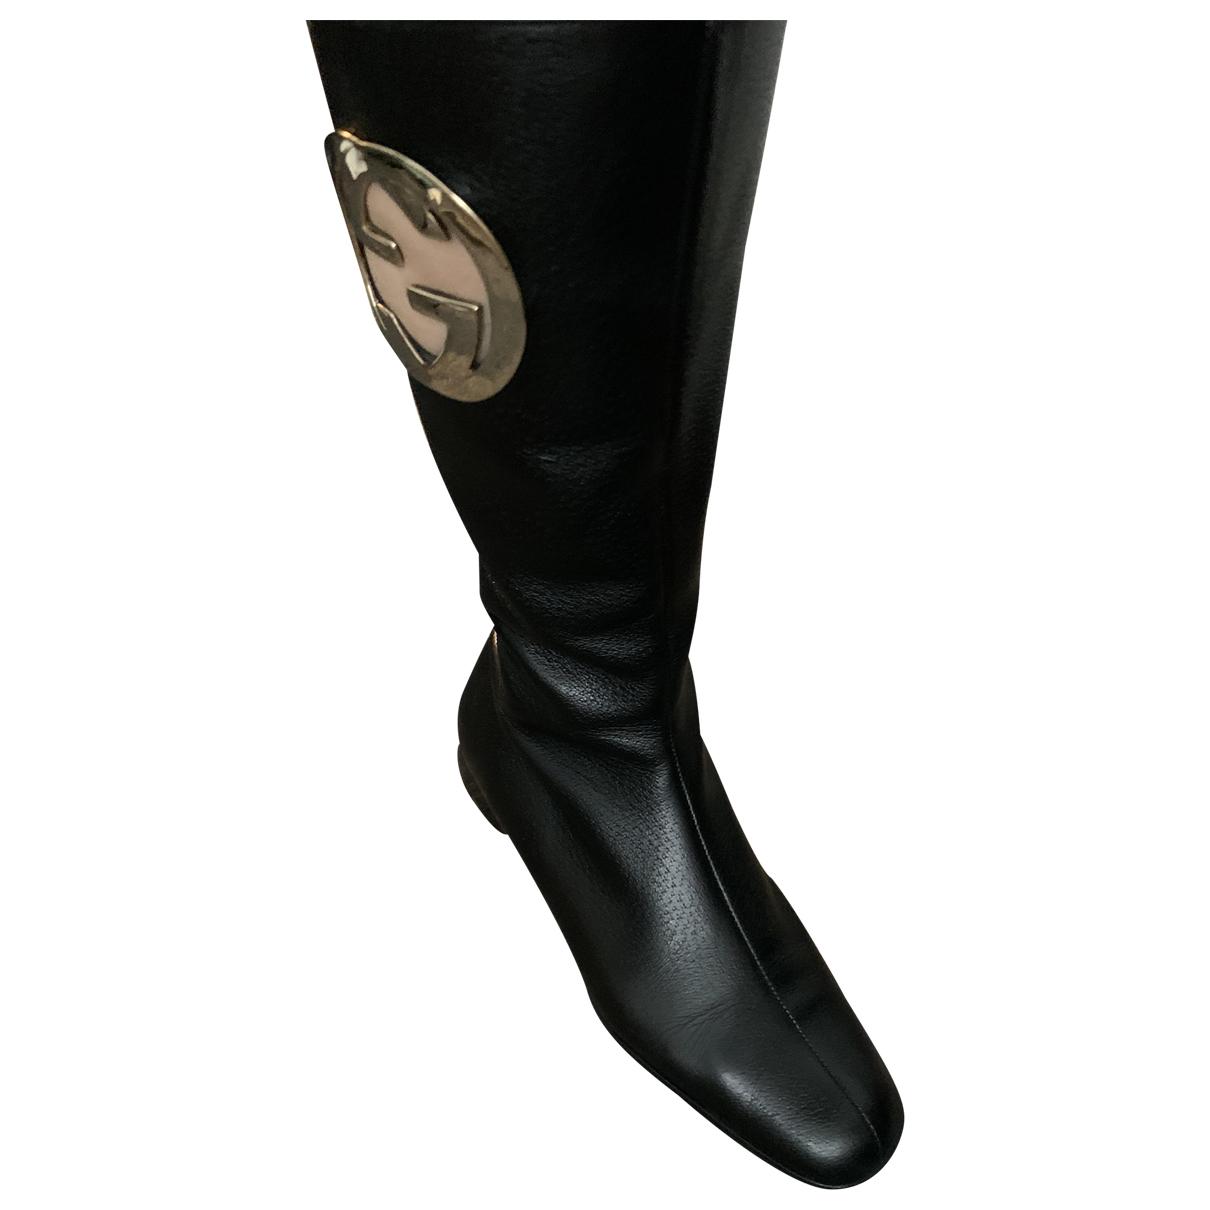 Gucci N Black Leather Boots for Women 36.5 EU